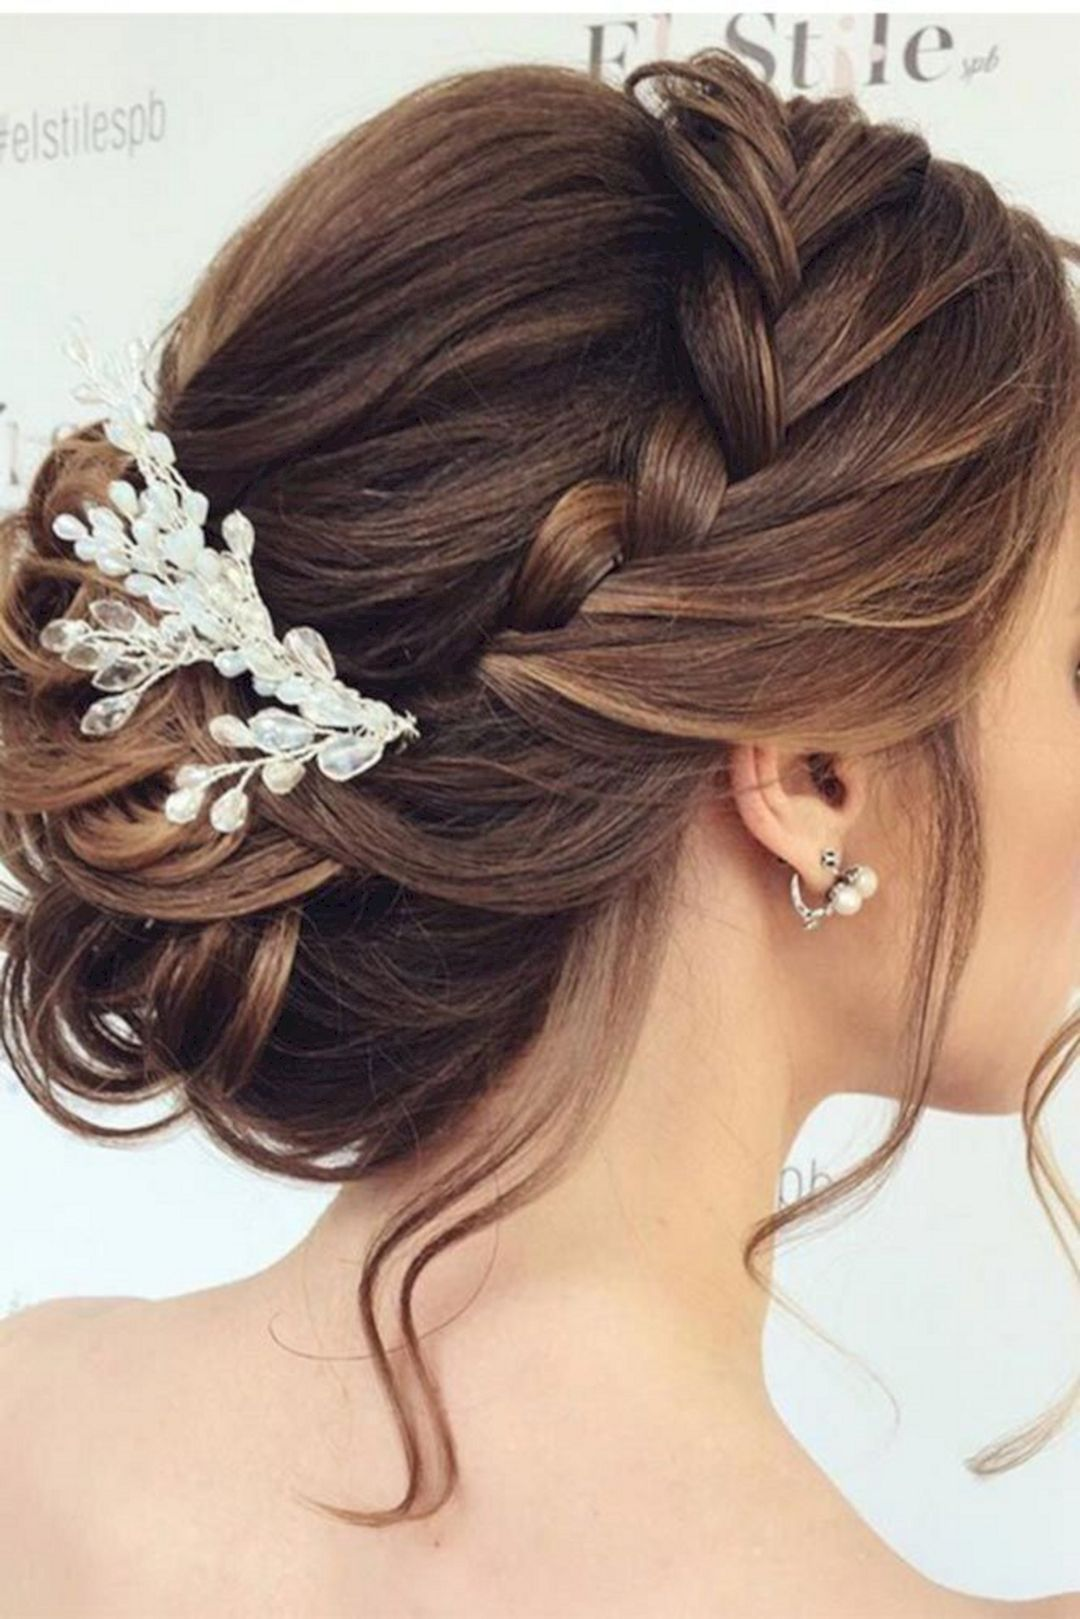 wedding hairstyles for bridesmaids | hairstyles | bridal